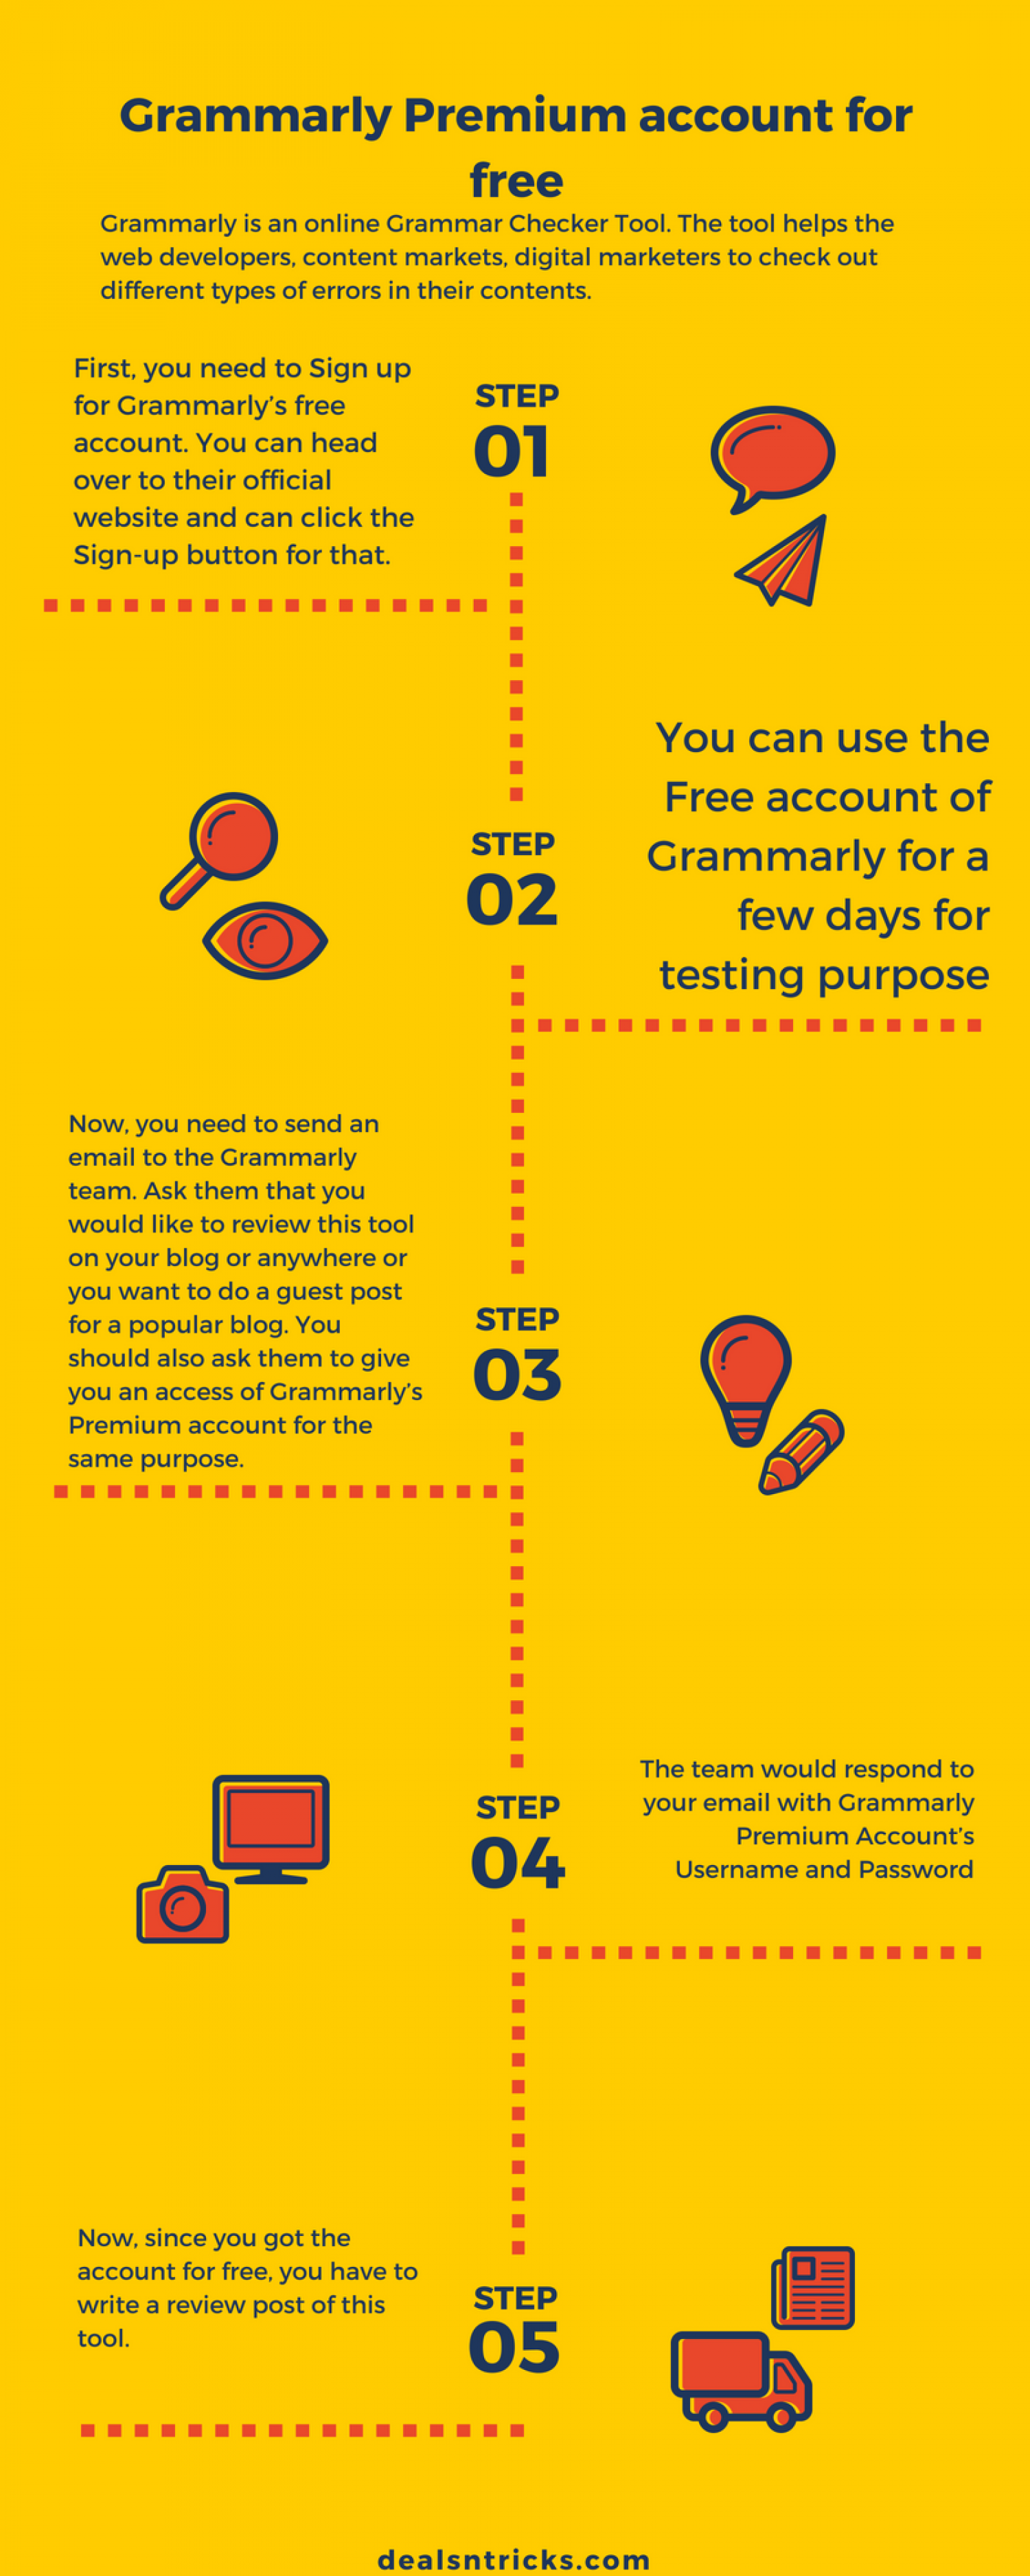 Grammarly Premium account for free Infographic